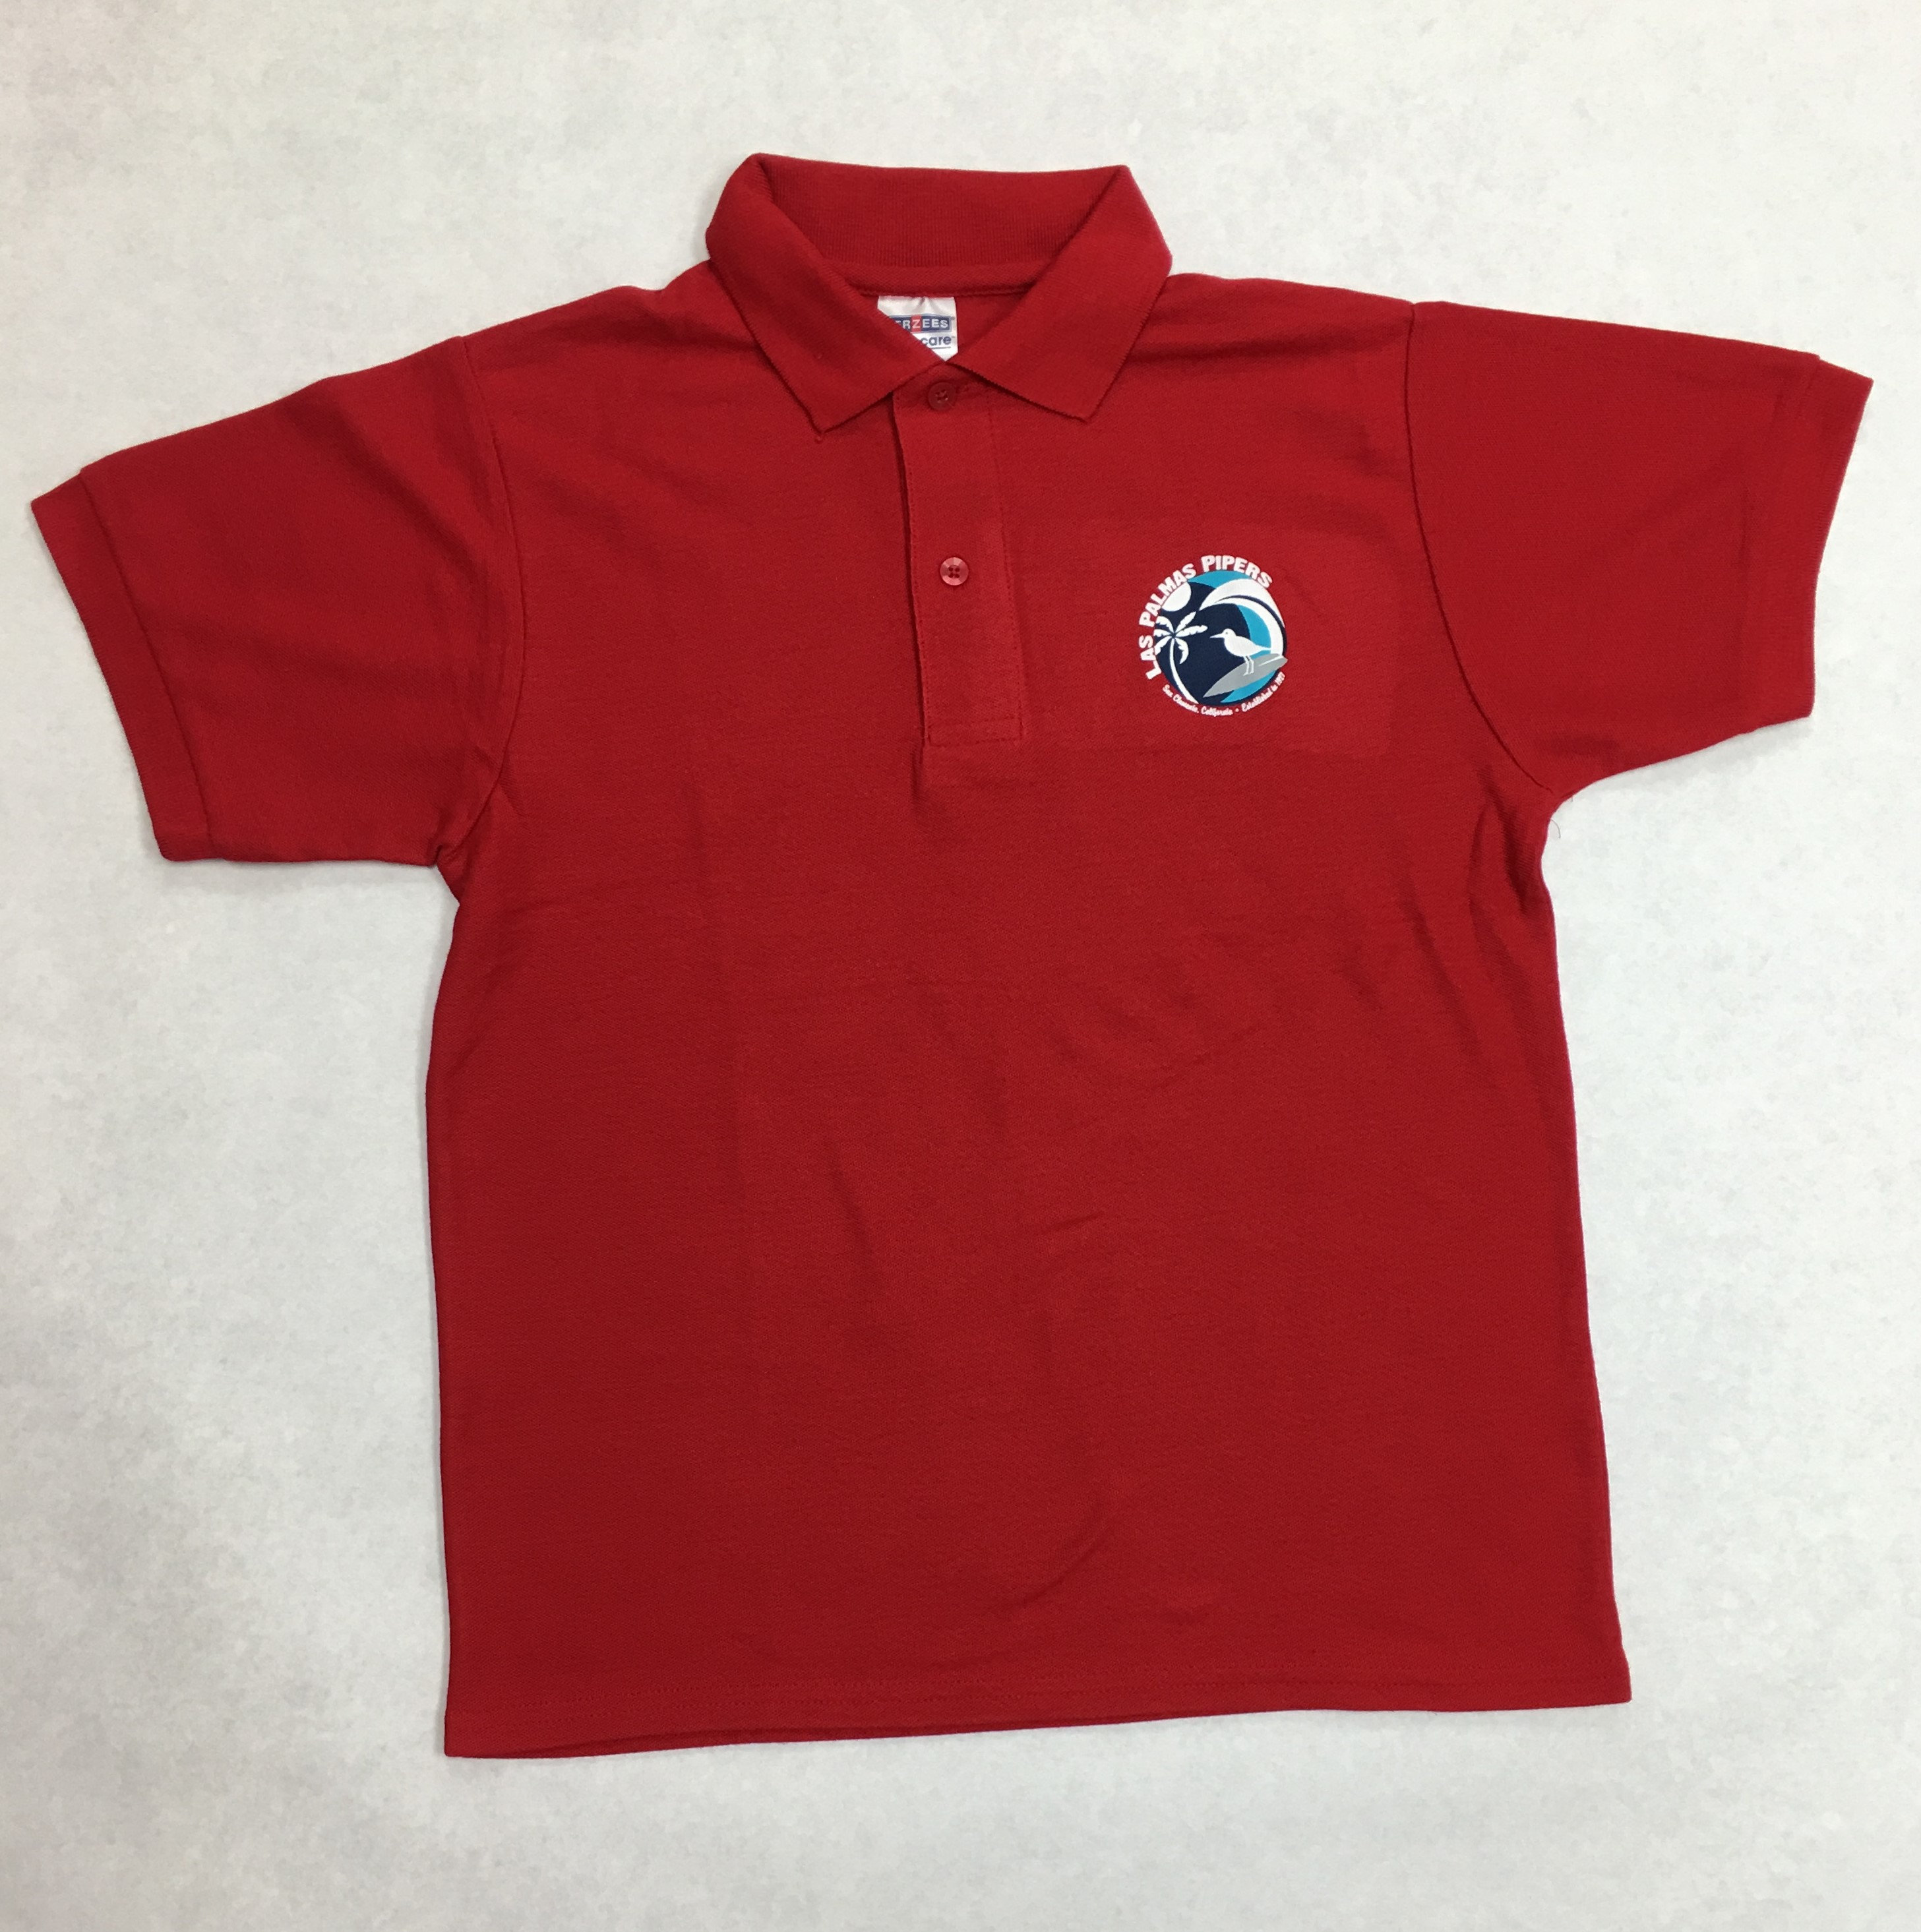 Pique Polo Colors Blue Red And White Online Orders Are Delivered To Your Student Via The Clroom Usually By Following Friday Allow Up 7 Days